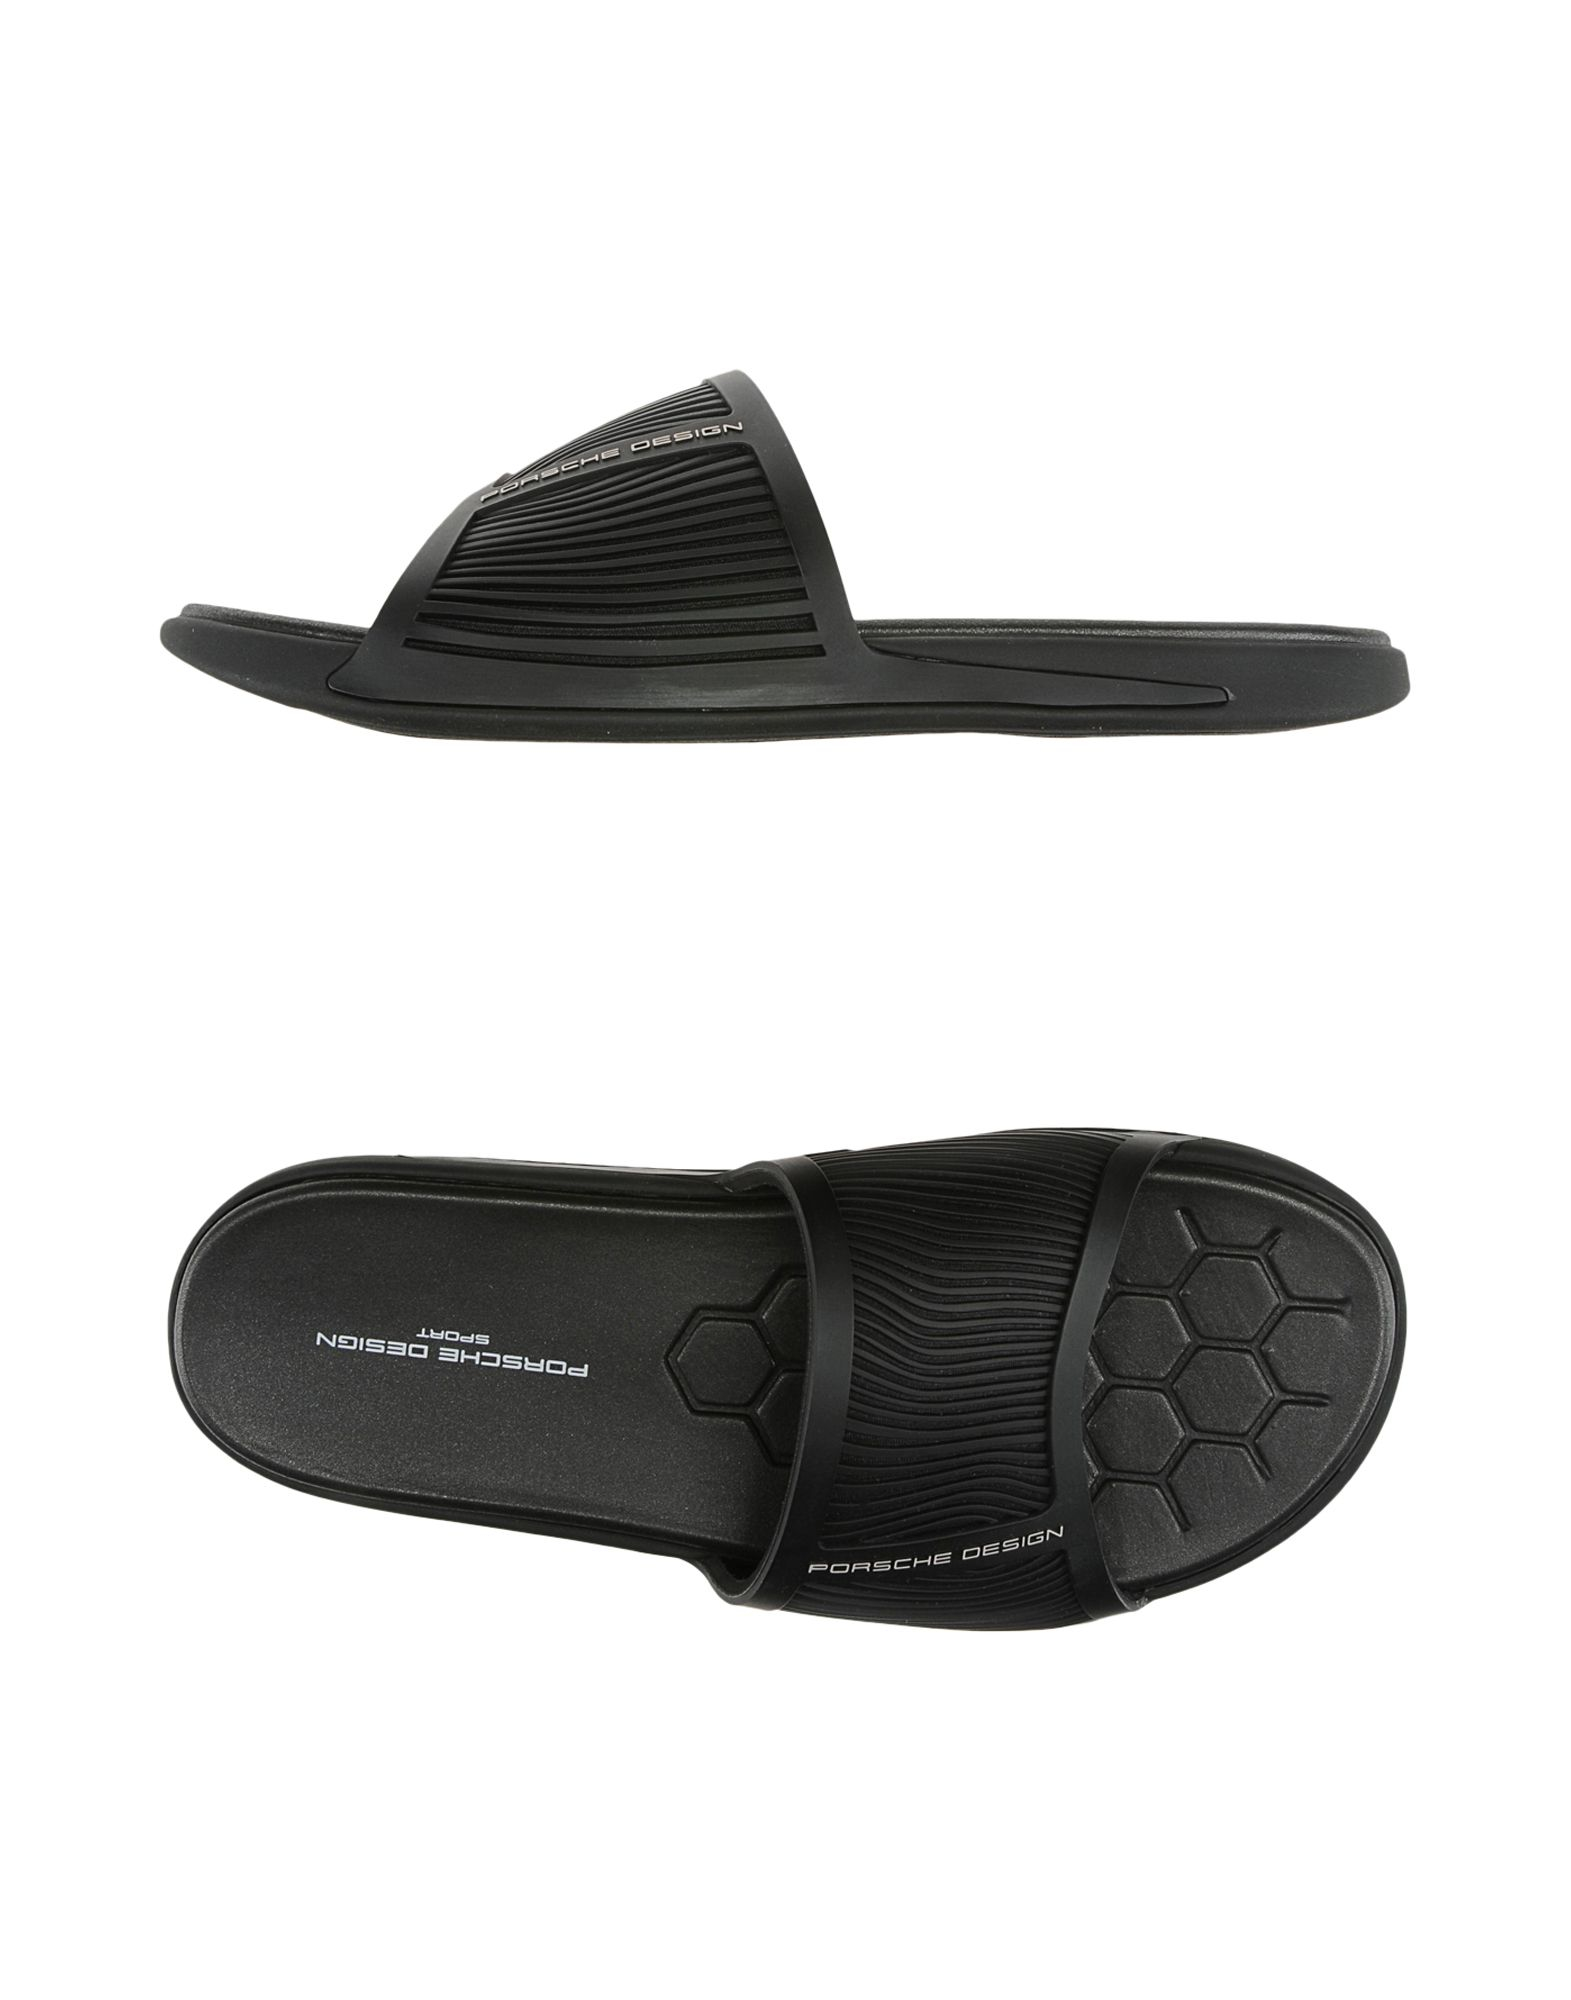 9c5f3c25c0cd ... adidas porsche design sandals slides flip flops pool e3309 8d1ce   coupon code lyst porsche design sandals in black for men 97825 9e7ac